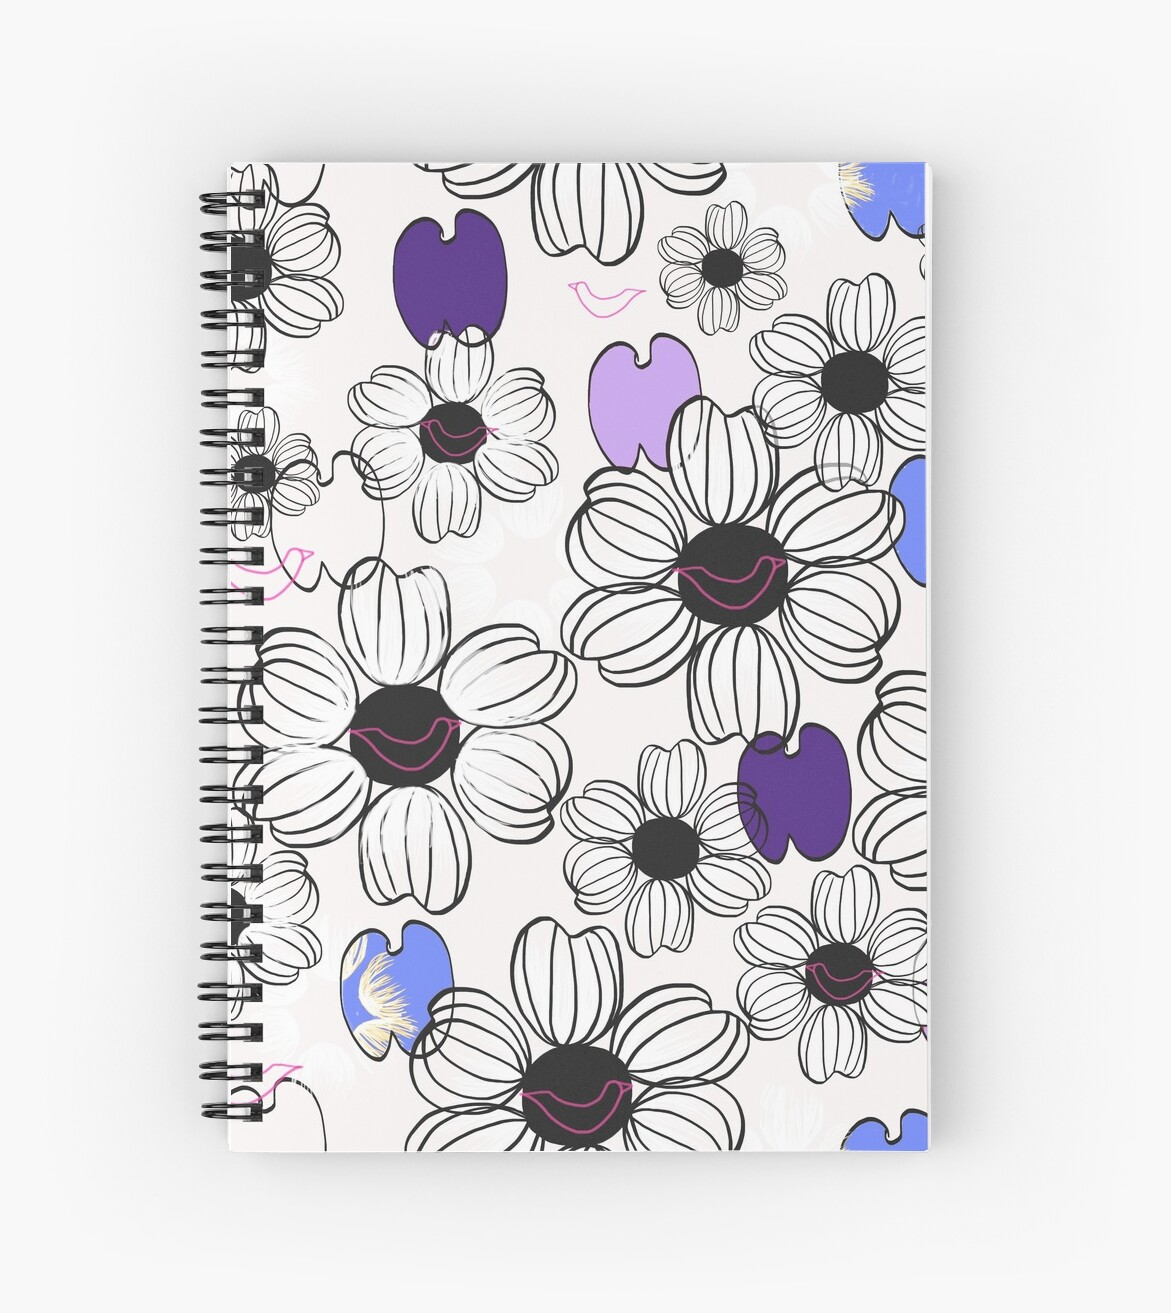 Black and white floral pattern, color by Karine-Anglade